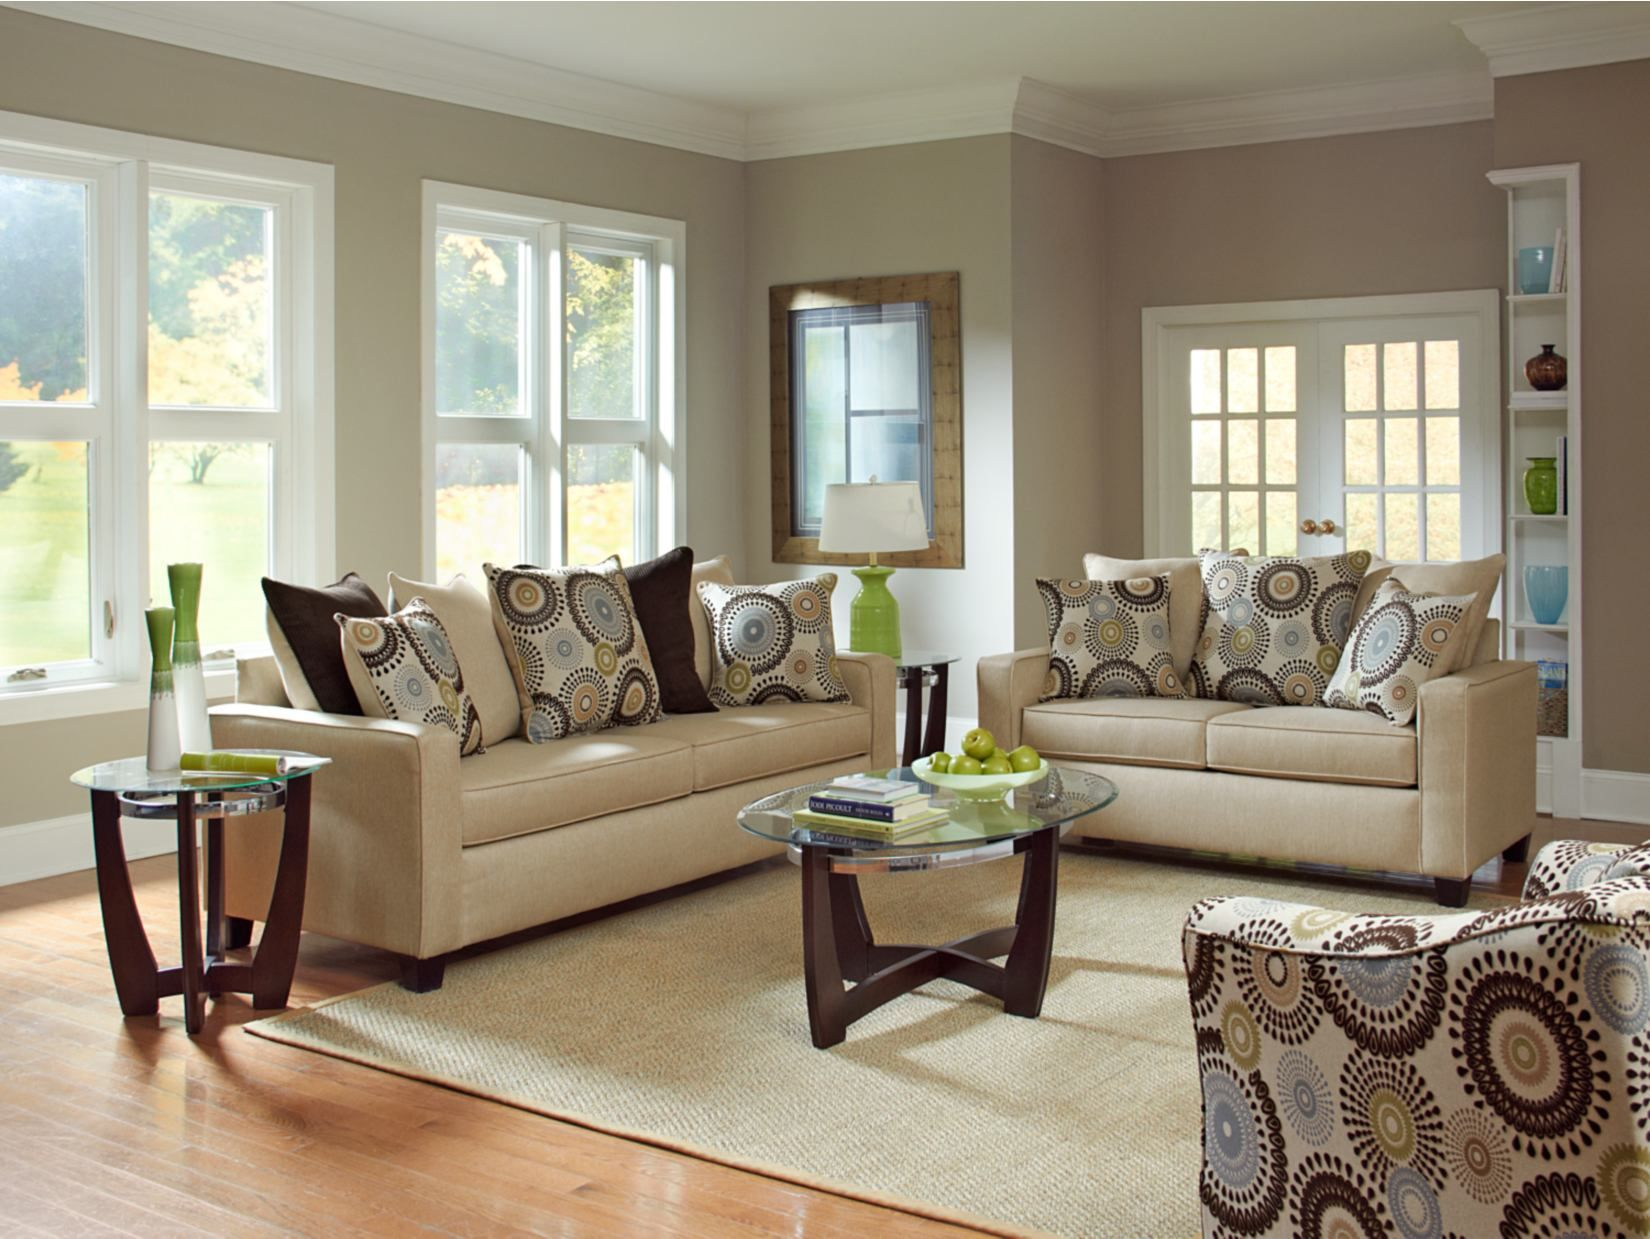 Cream Sofa Living Room Designs Enchanting Stoked Cream Sofa  Value City Furniture  For The Home Design Ideas